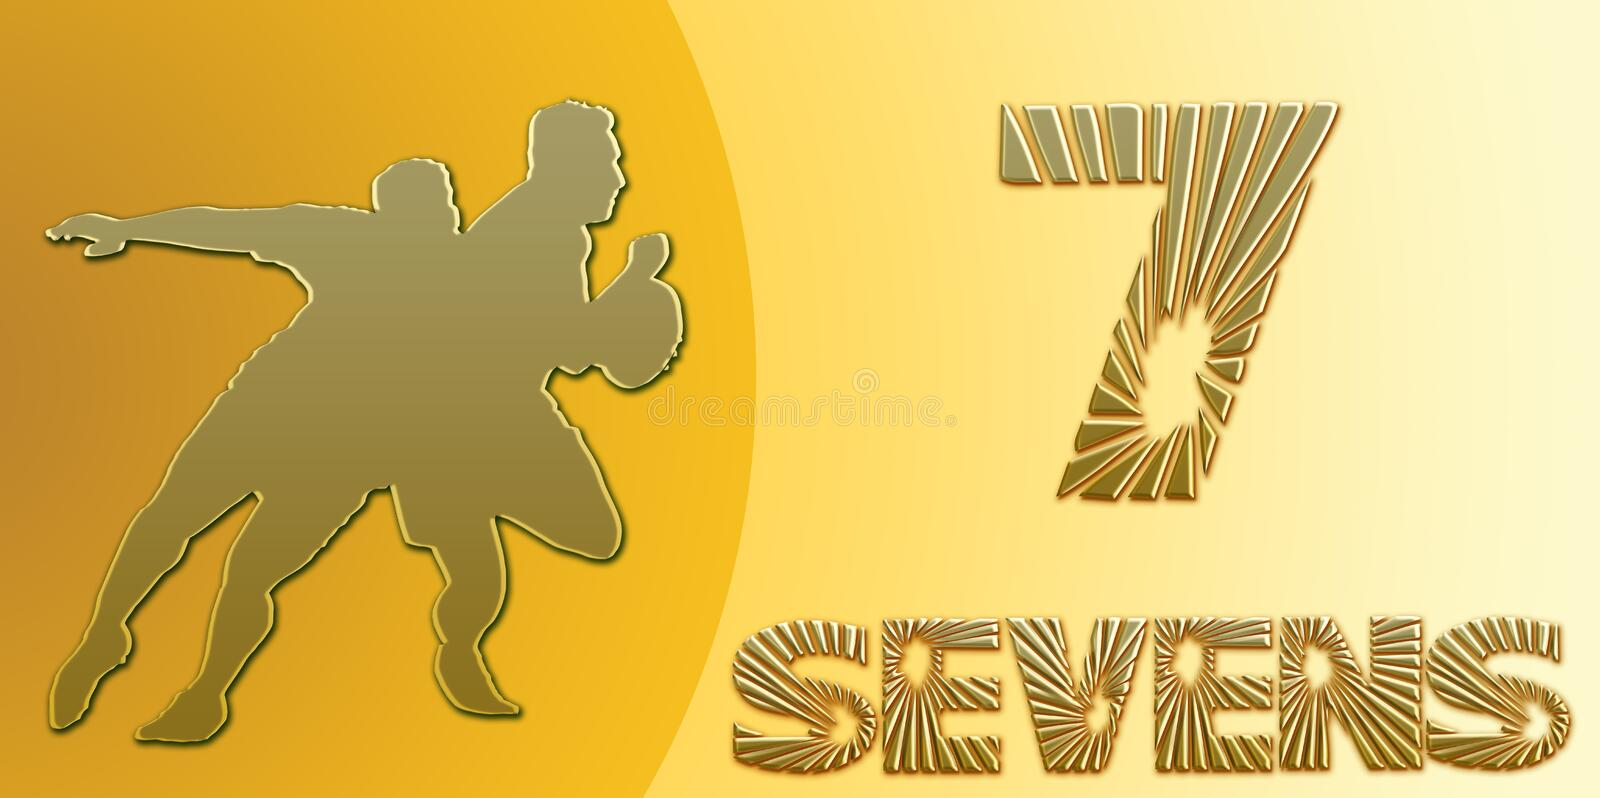 Golden Sevens Rugby Banner on Gold royalty free illustration